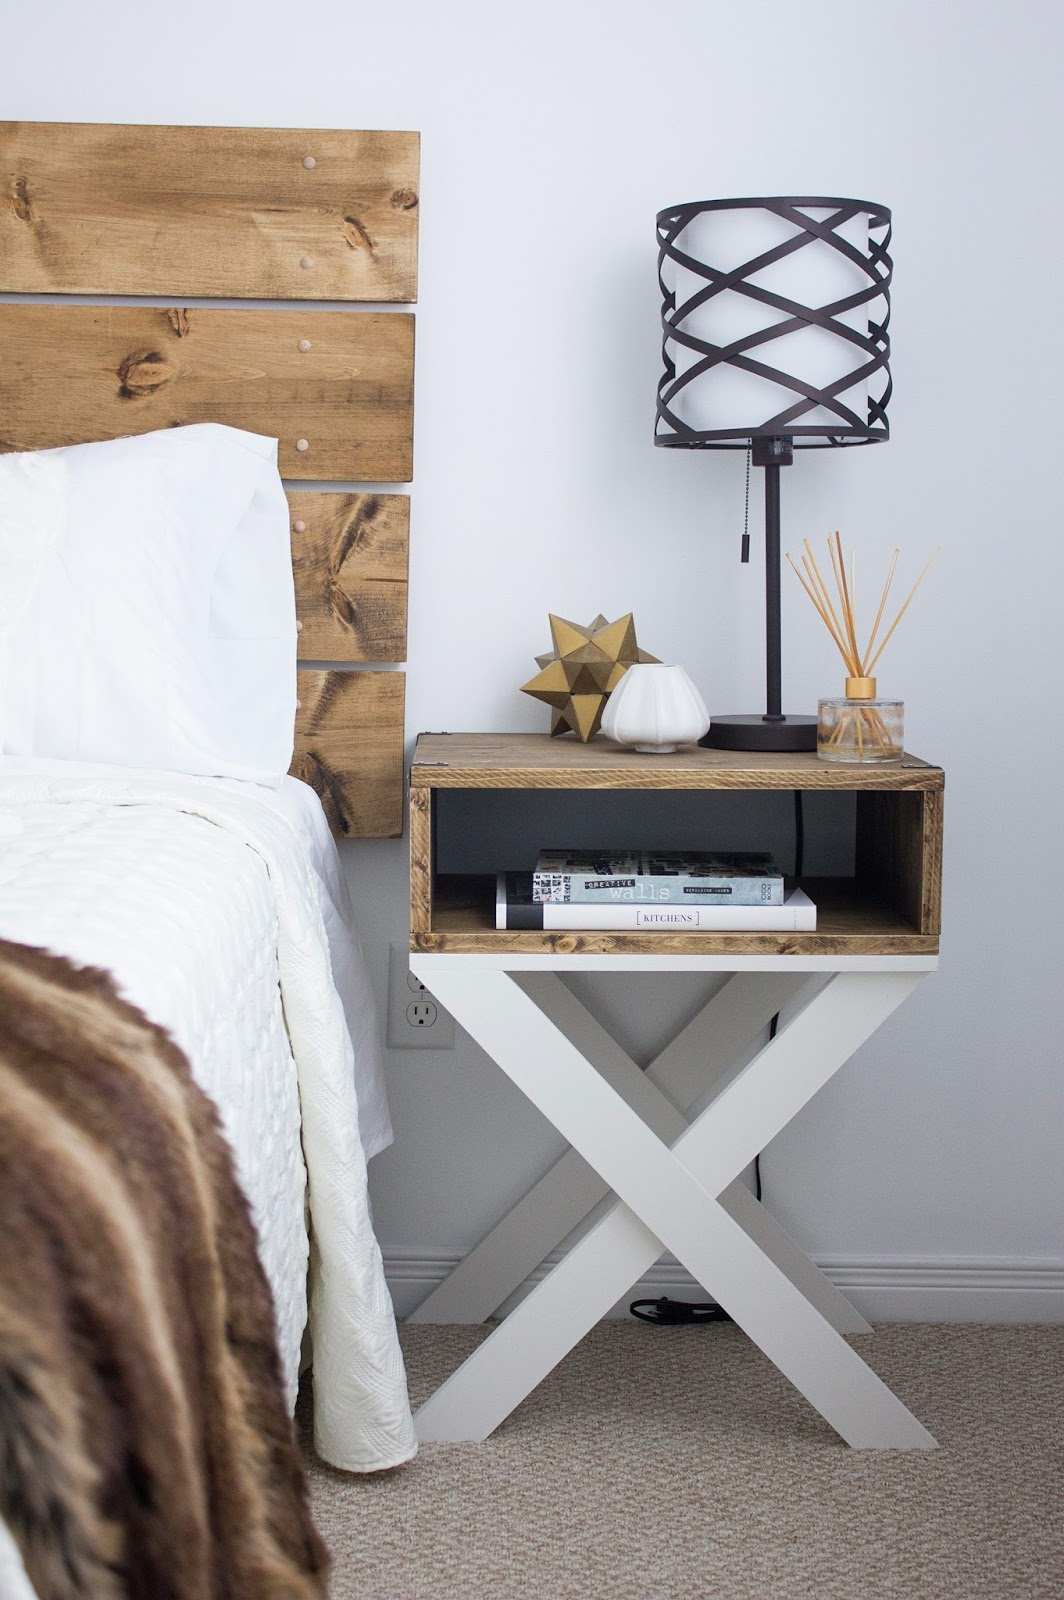 Hdblogsquad diy nightstands headboard brittany stager diy headboard nightstand reveal solutioingenieria Choice Image